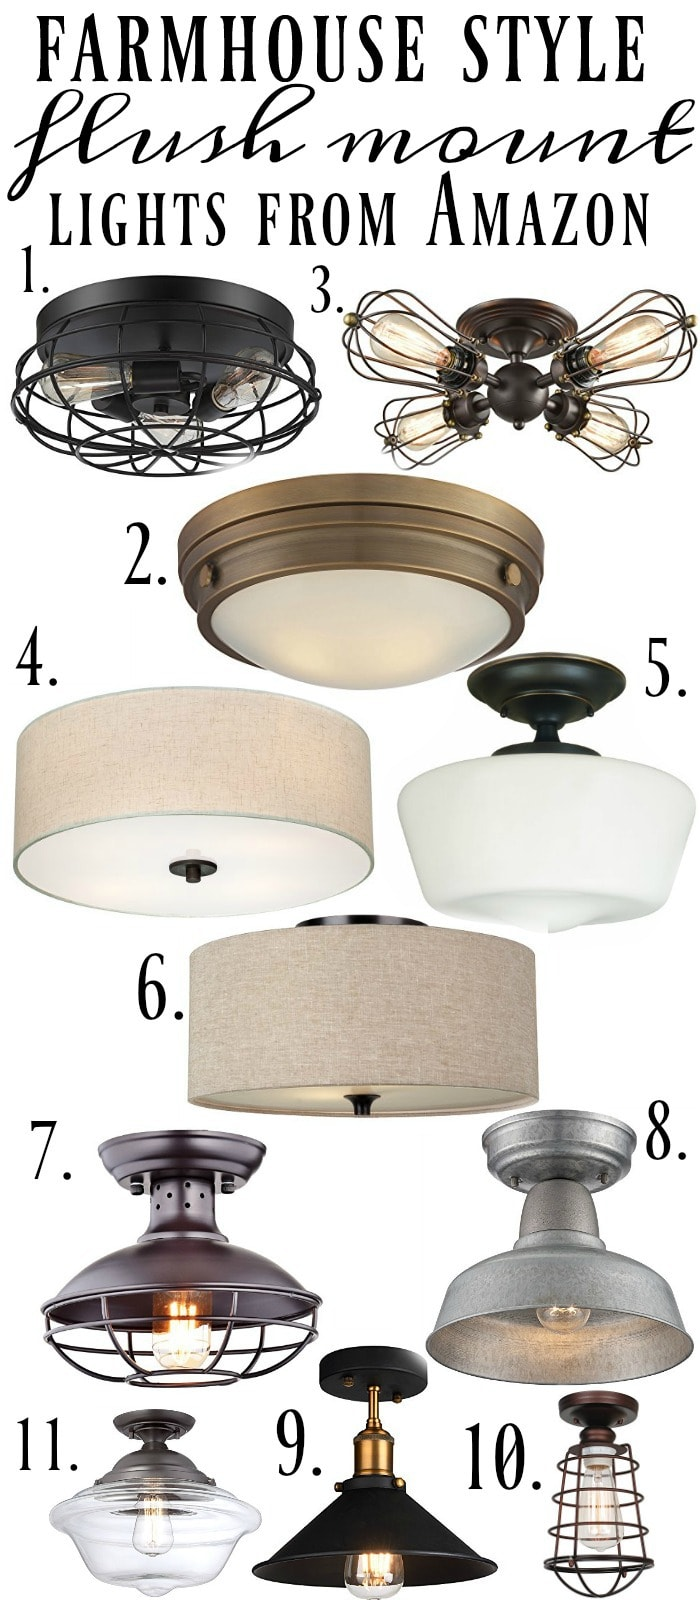 Farmhouse Flush Mount Lights Liz Marie Blog